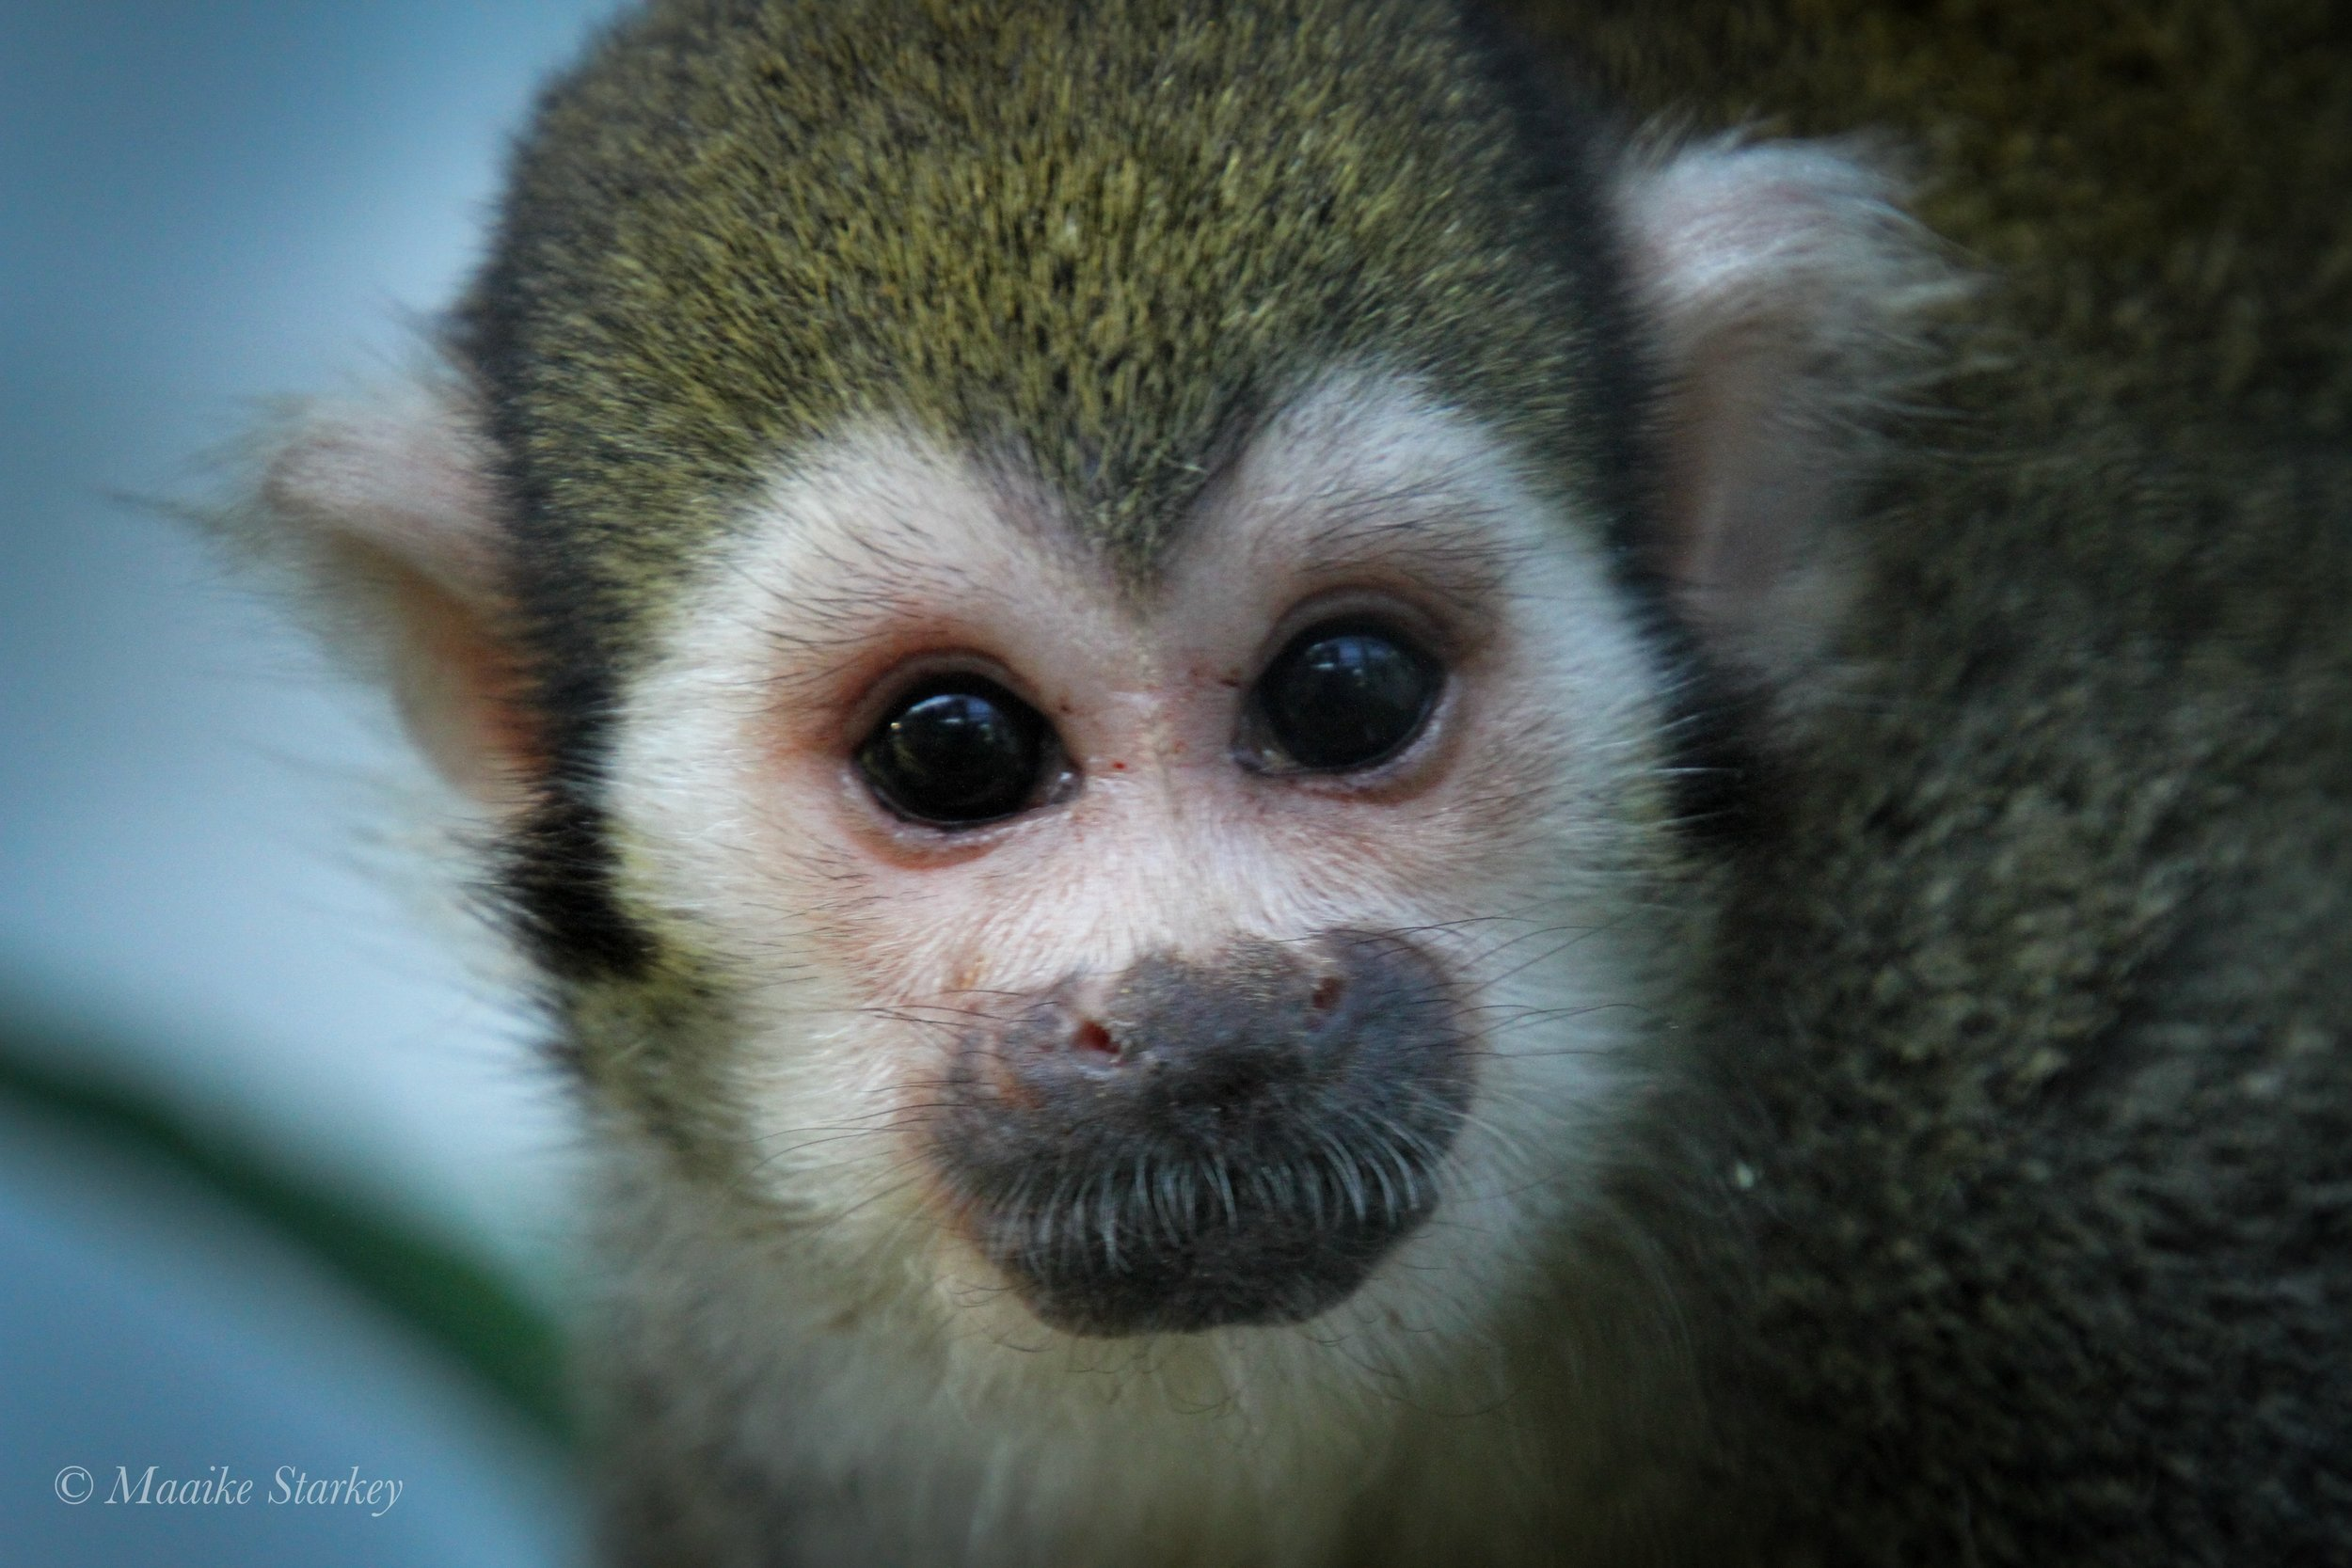 Is it safe to release monkeys from research? - VETERINARIANS provide healthcare to monkeys used in research and only release healthy monkeys for retirement.